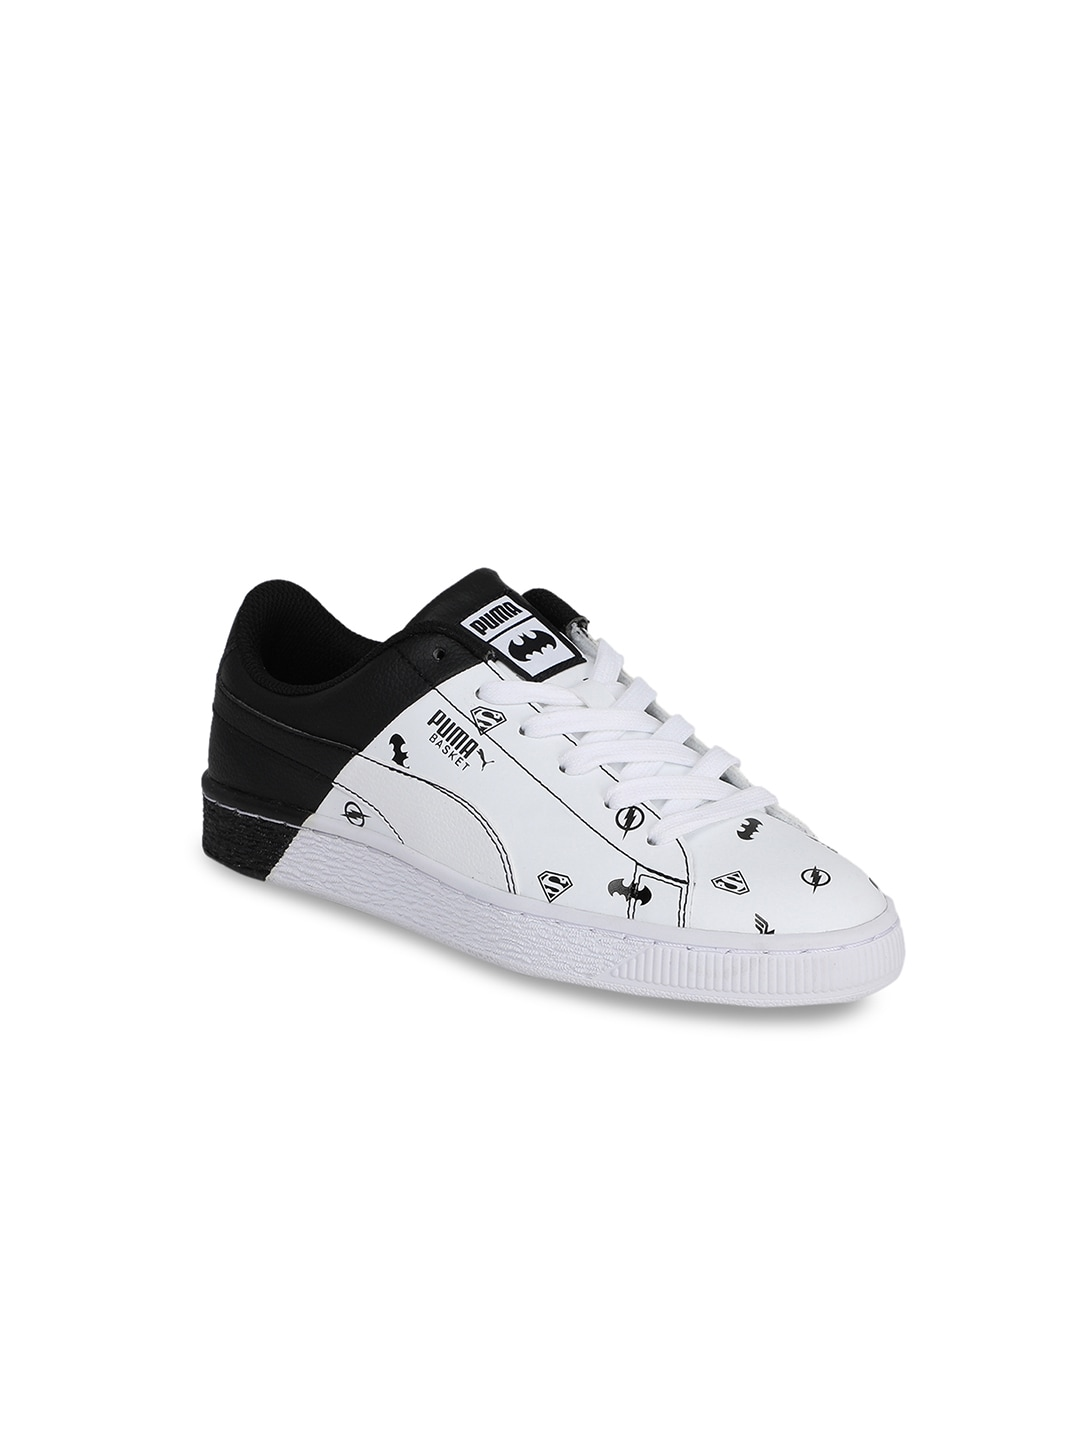 Puma James Jr Ind White Sneakers for Boys in India February c6b21fa64